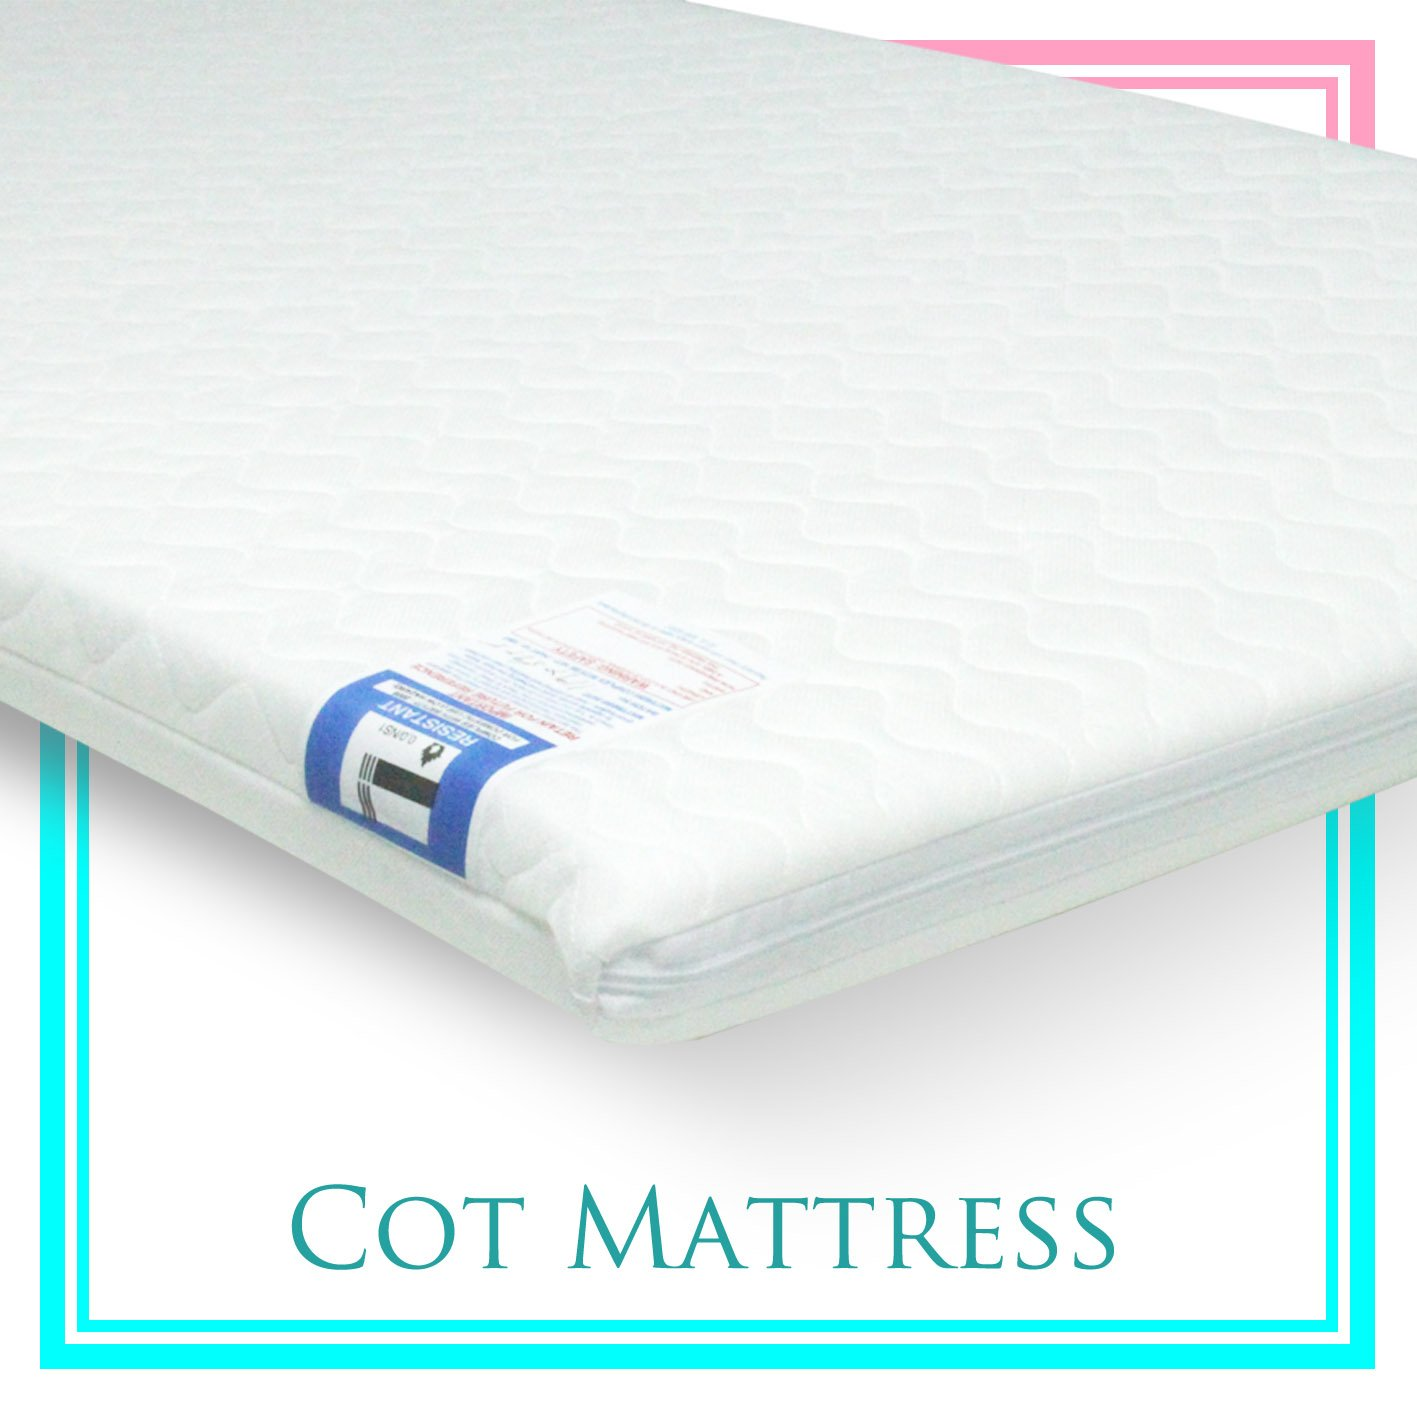 Baby Travel Cot Mattress 95 x 65 x 5 CM QUILTED fits most Graco/M&P Cots, Breathable Antiallergenic - ATM Brand ATM Baby-Brand